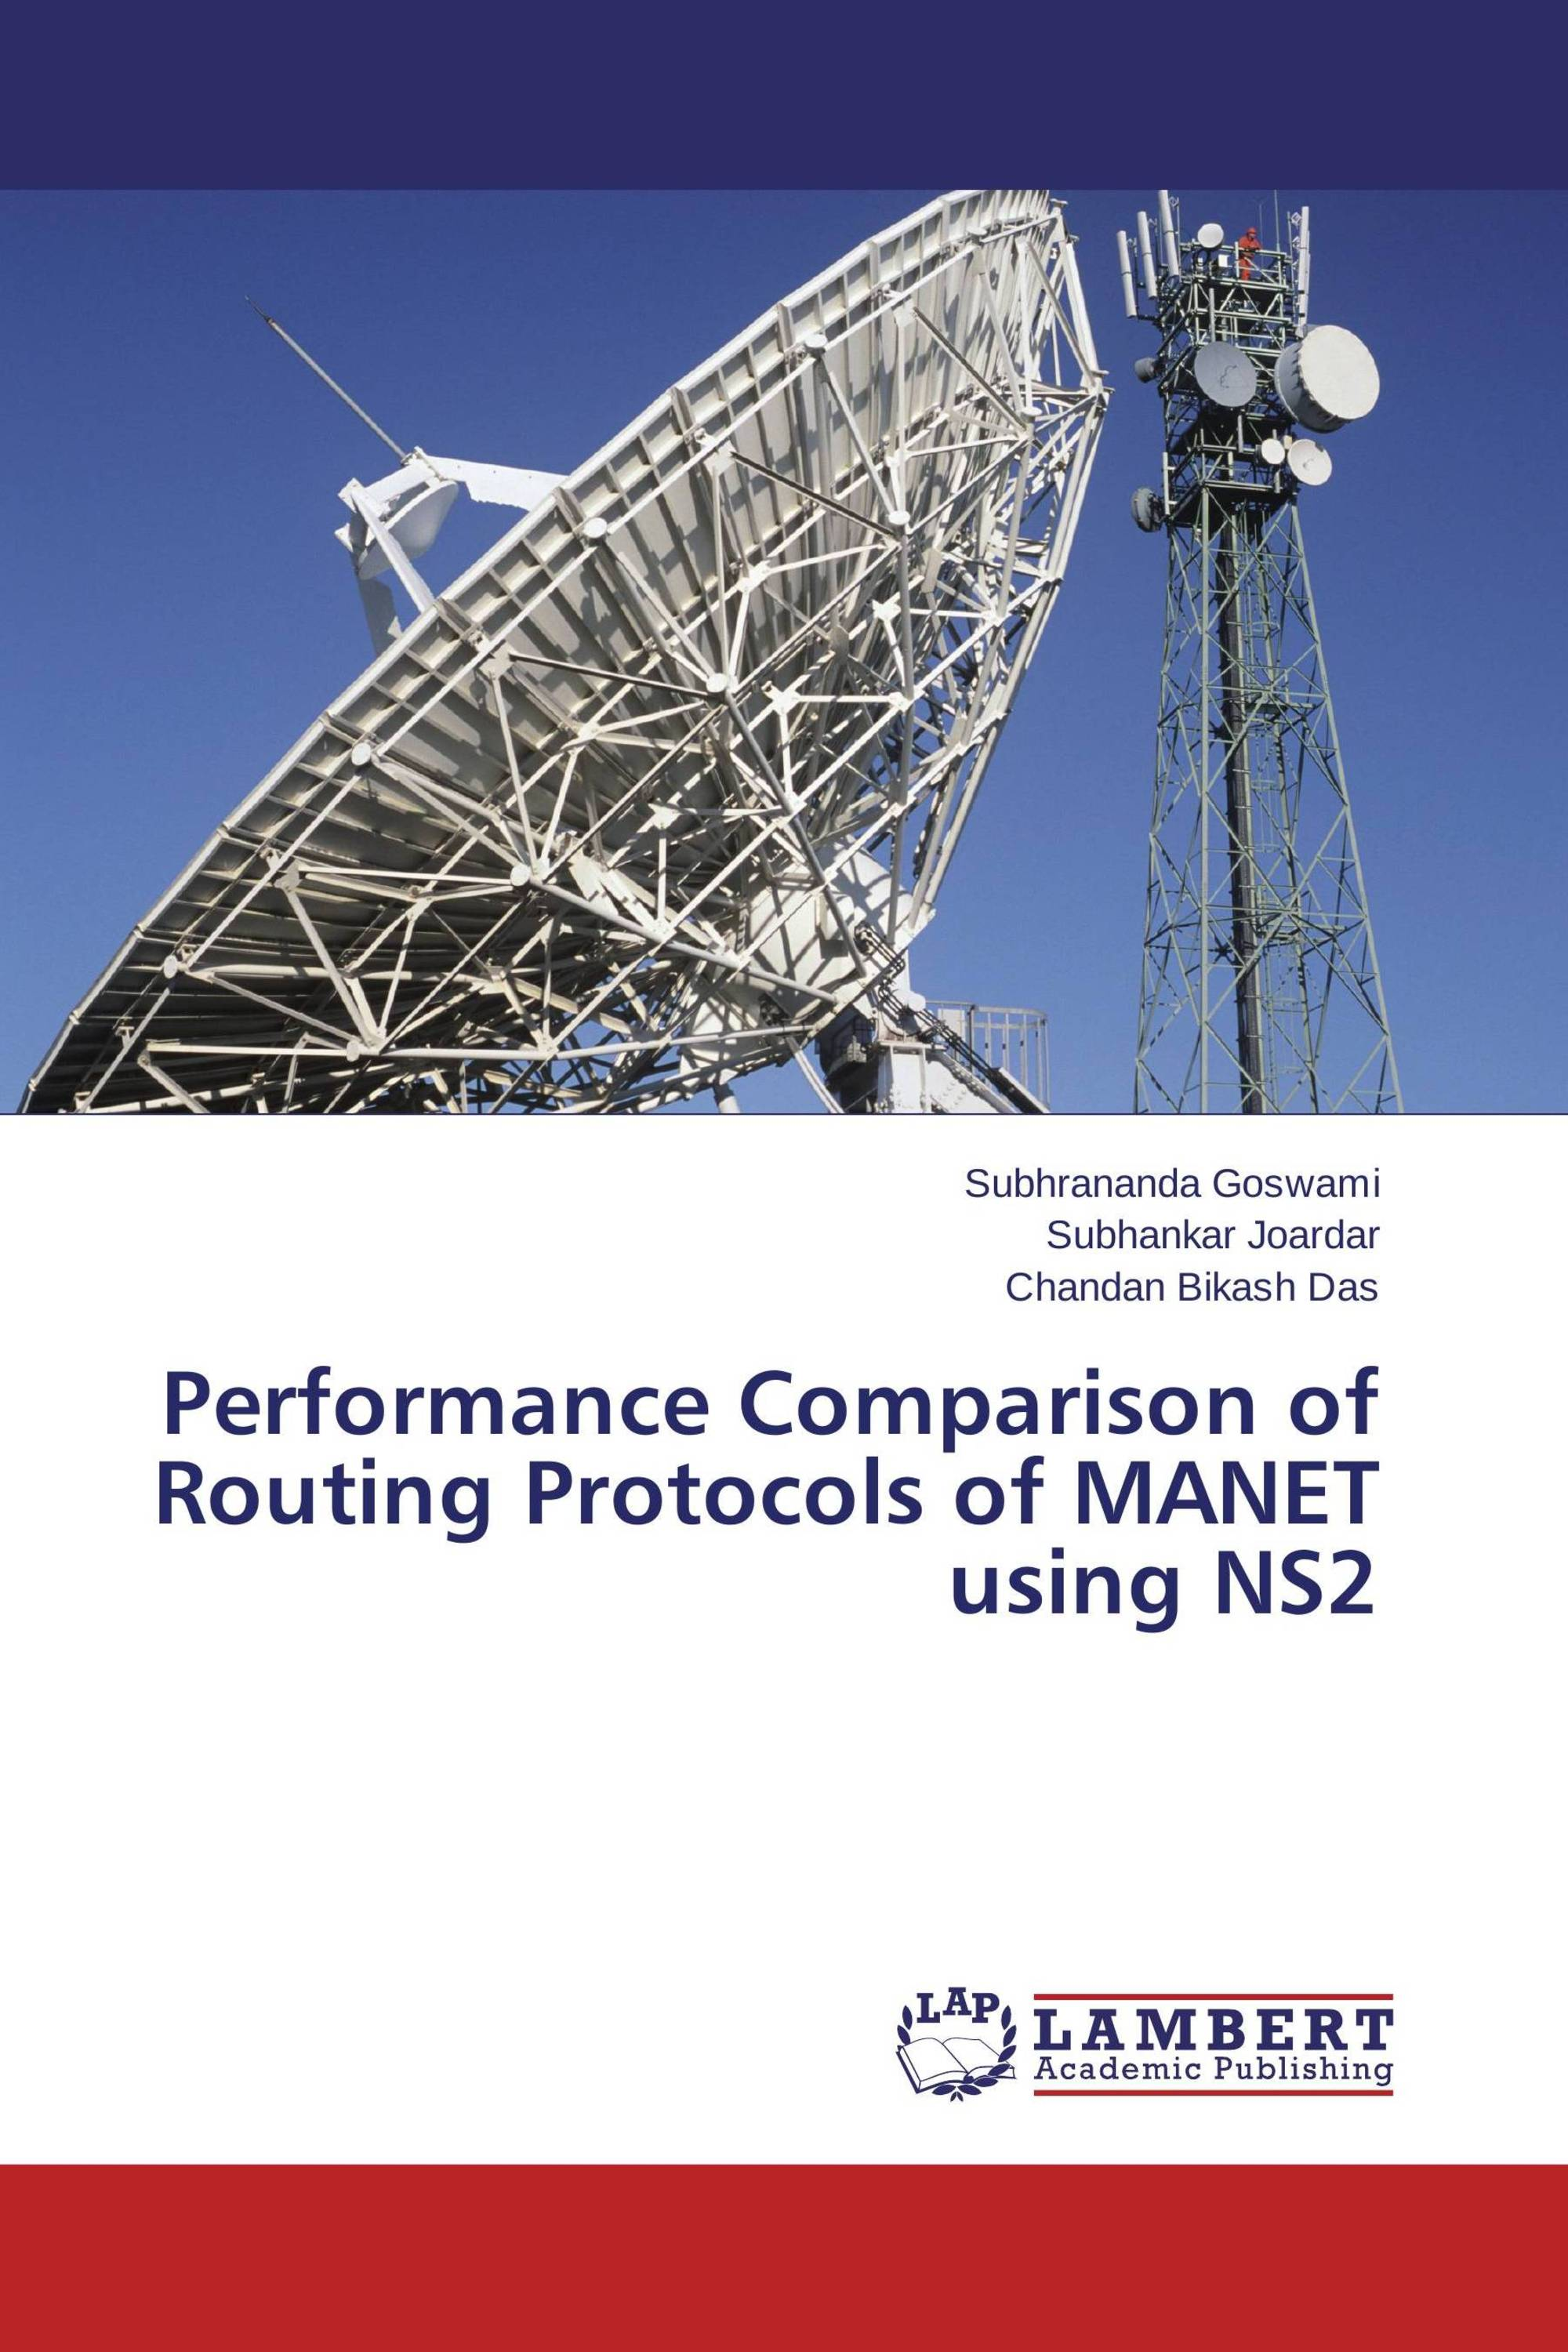 Performance Comparison of Routing Protocols of MANET using NS2